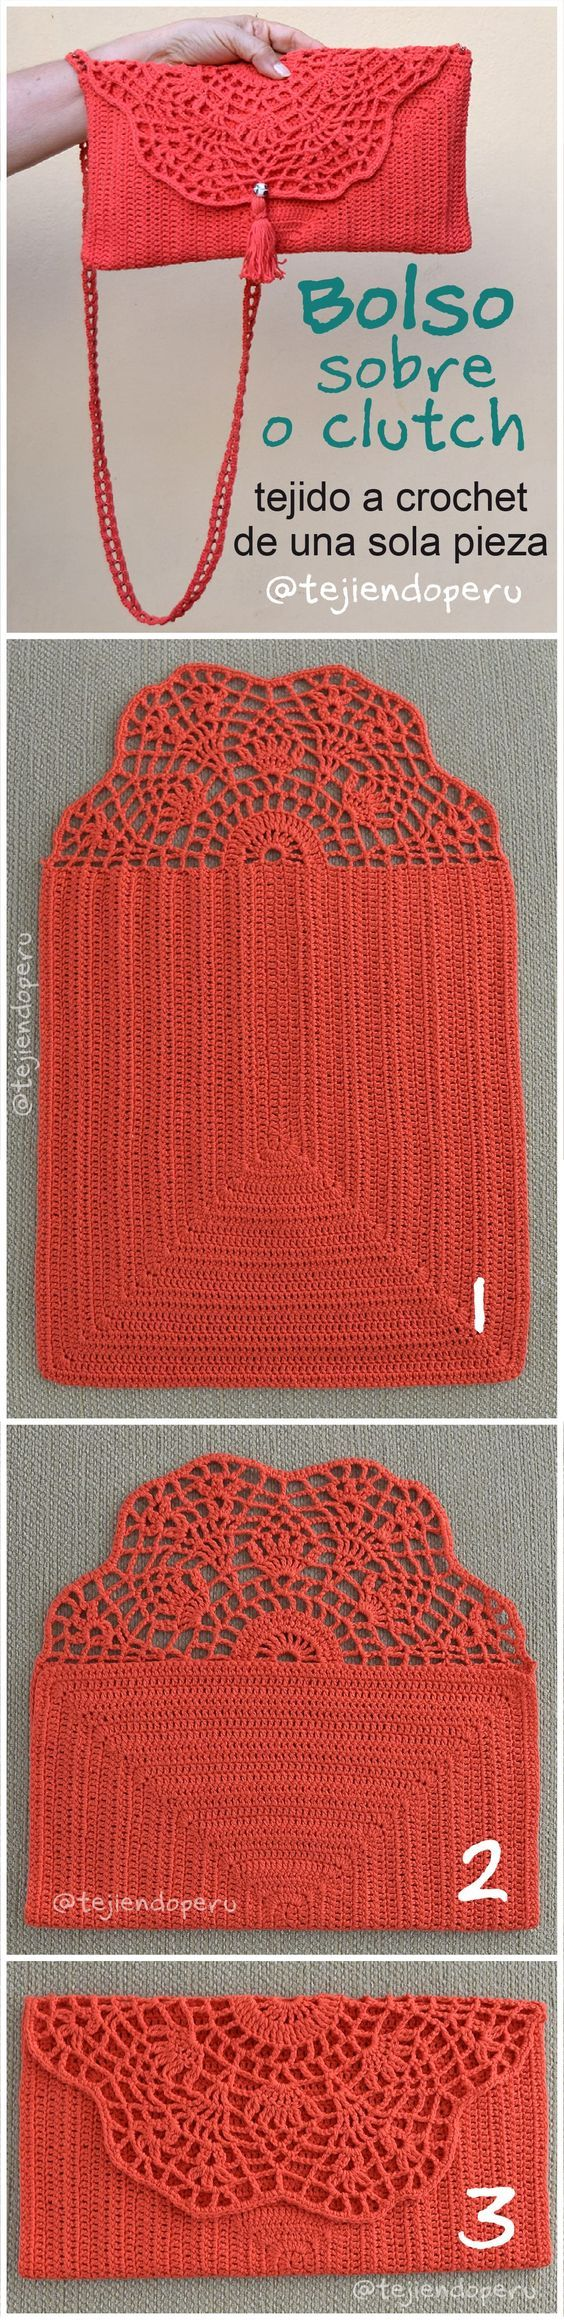 3687 Best Projects To Try Images On Pinterest Crochet Patterns Byo Shell Clutch In Matte Burgundy One Piece Spanish Tutorial